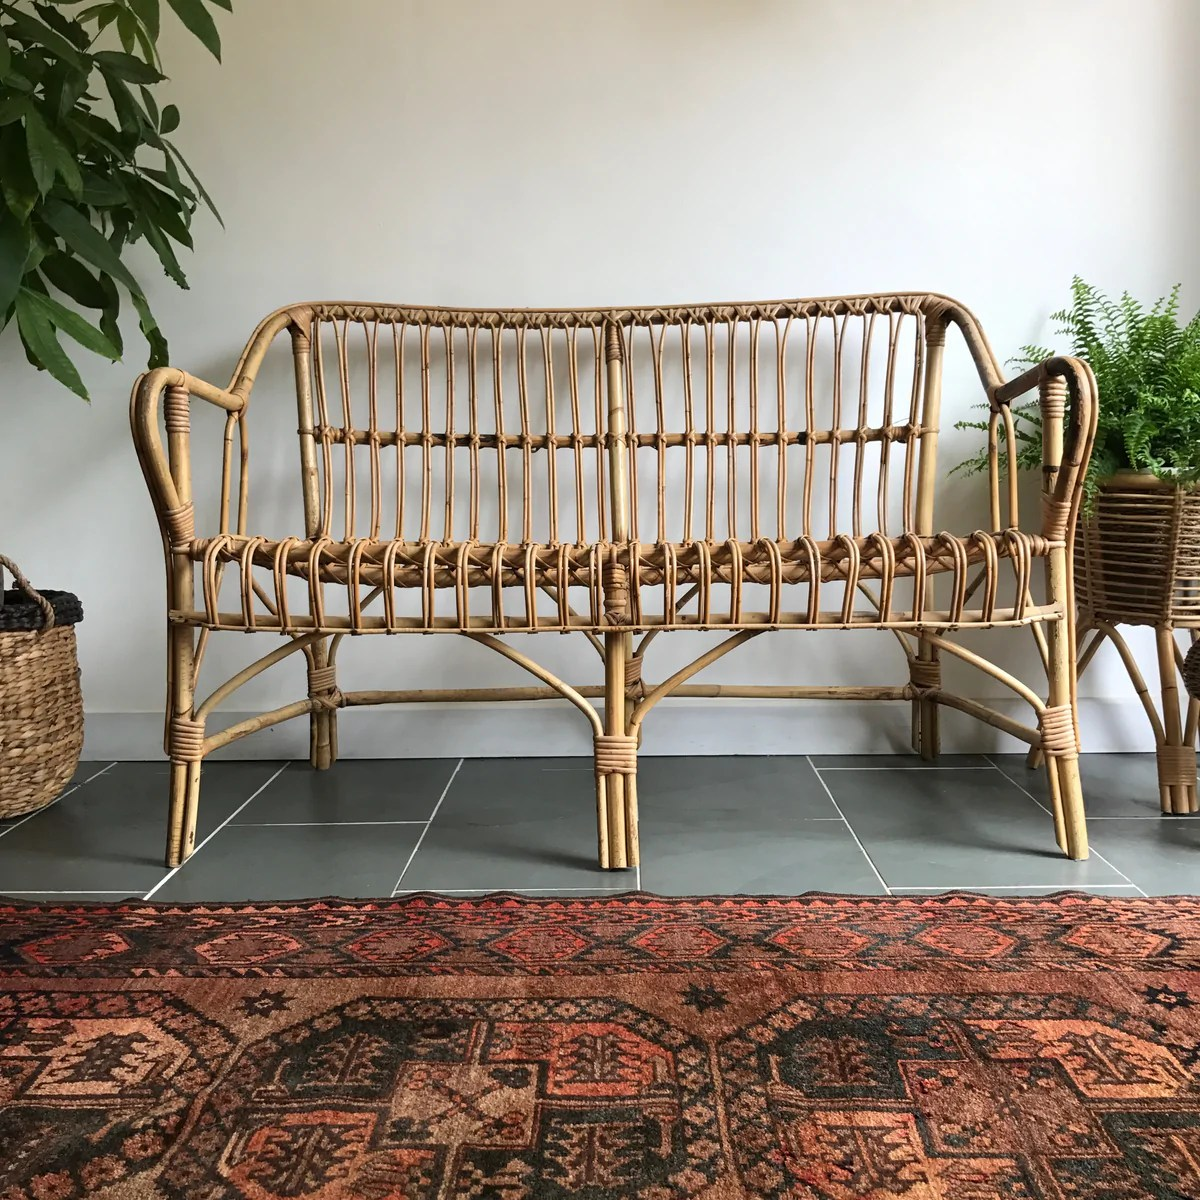 Chinese design studio uchida shanghai has created a small series of bamboo furniture designed for the. Vintage Bohemian Rattan Bamboo Sofa - Mustard Vintage